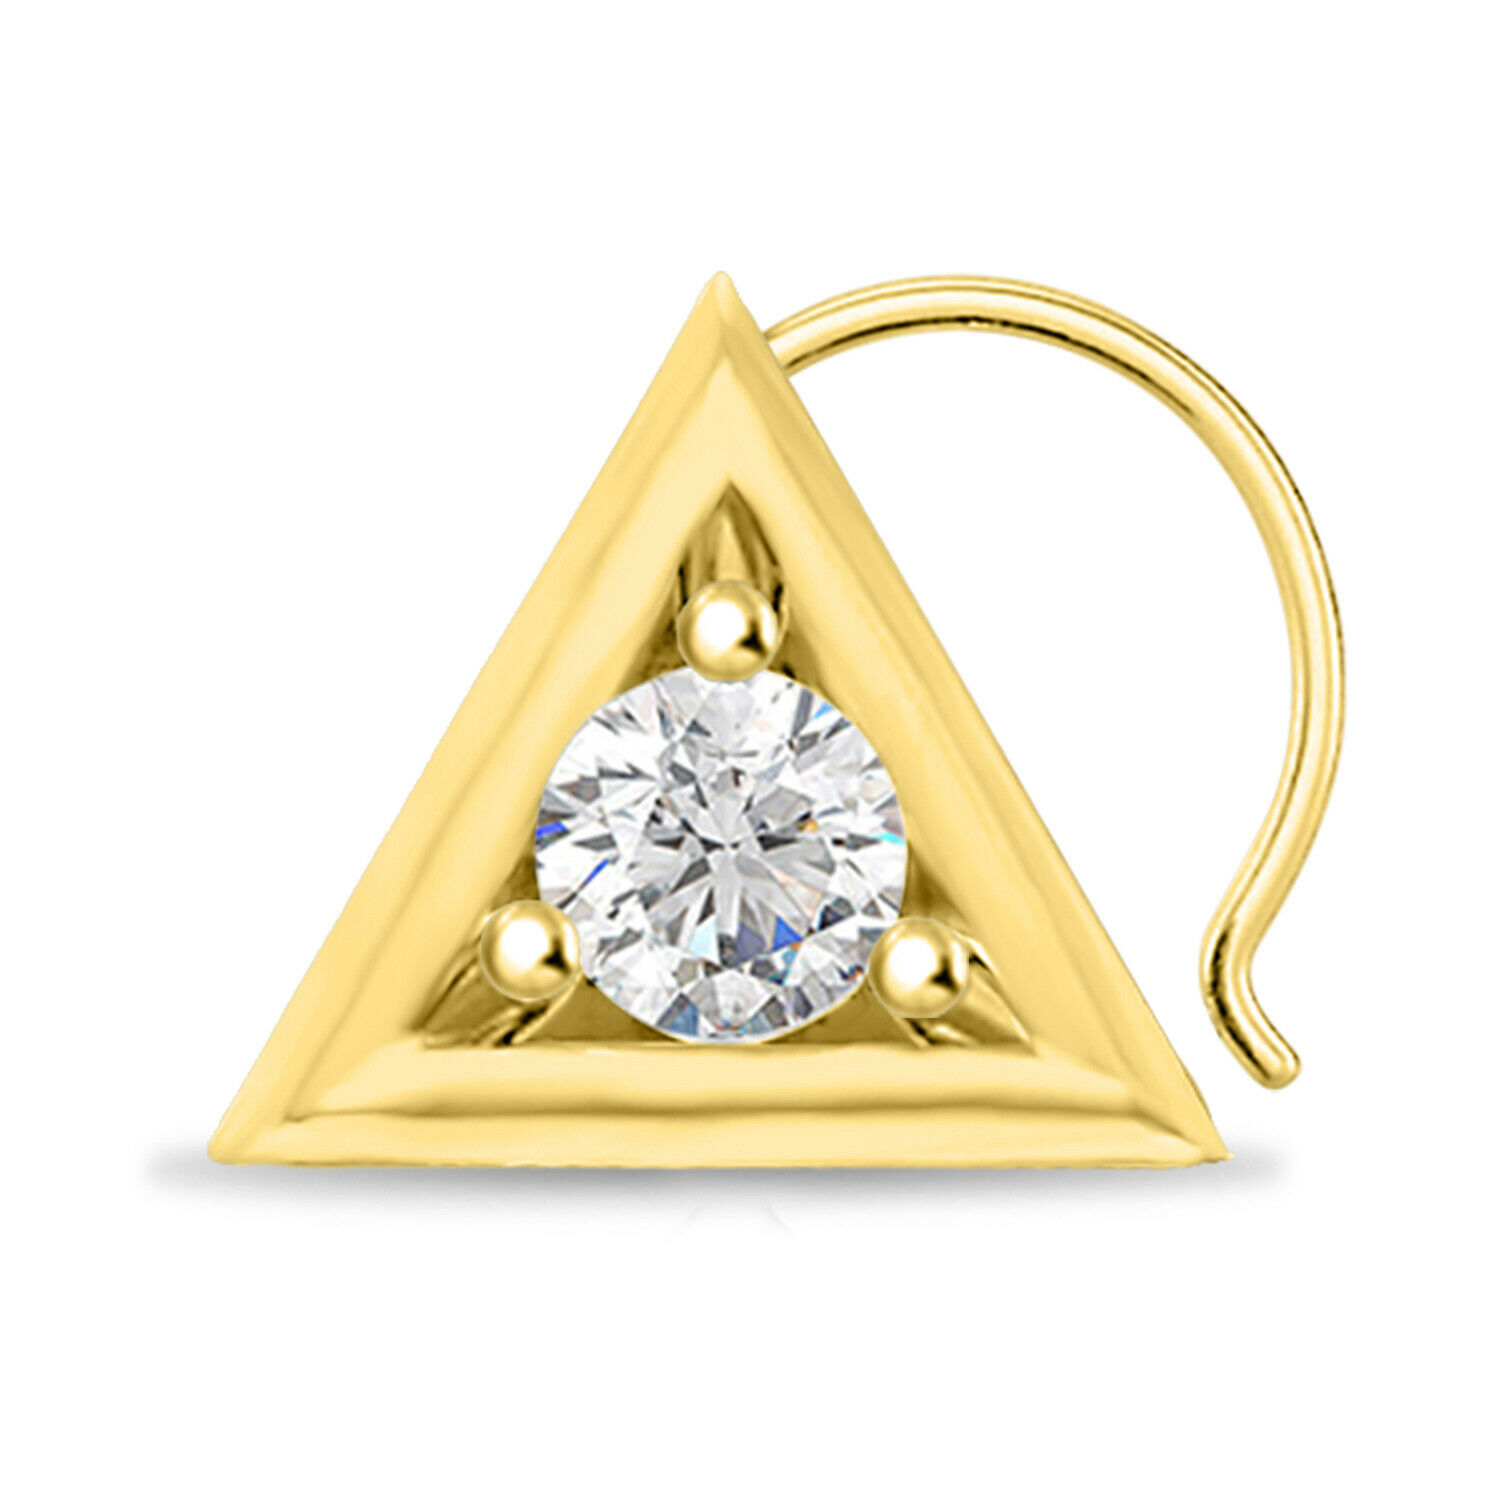 Primary image for Fancy Solitaire Nose Pin 075 ct Round Cut Diamond 14k Yellow Gold Finish